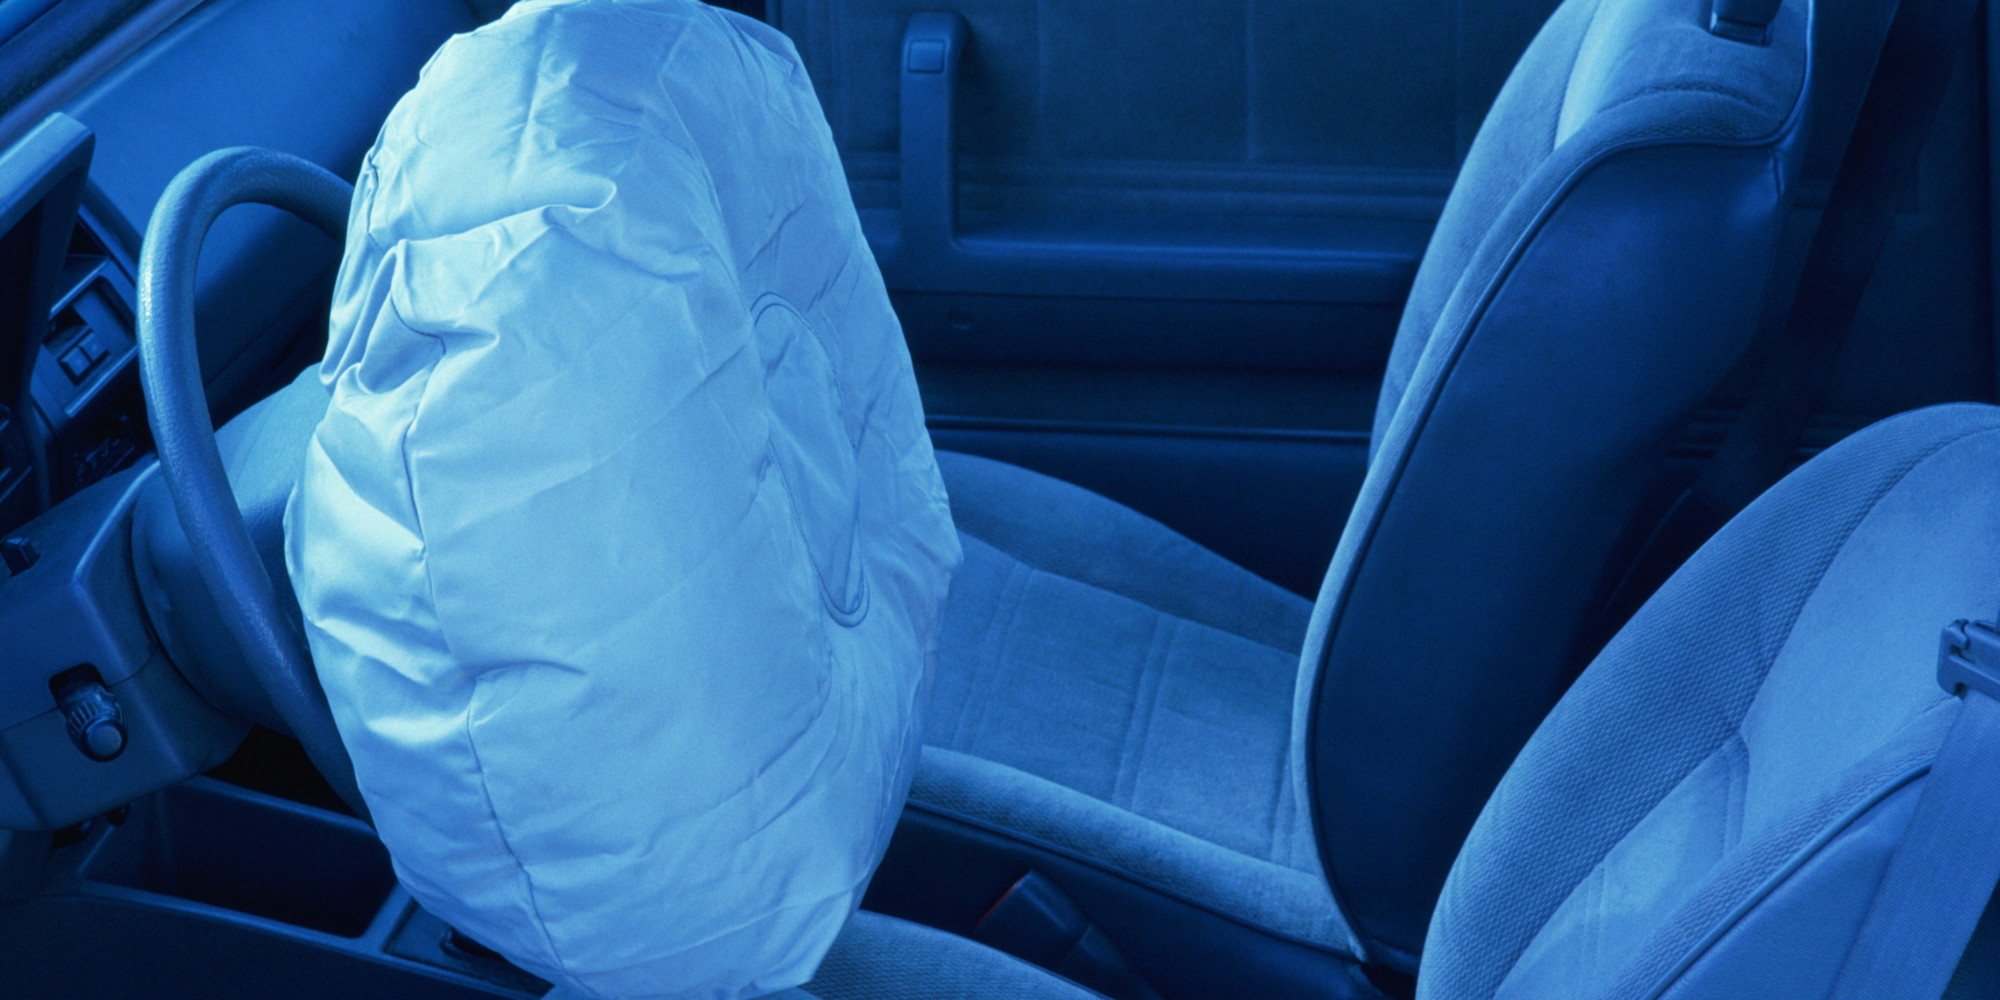 u s consumers sue takata over airbags class action status sought for larger payout. Black Bedroom Furniture Sets. Home Design Ideas